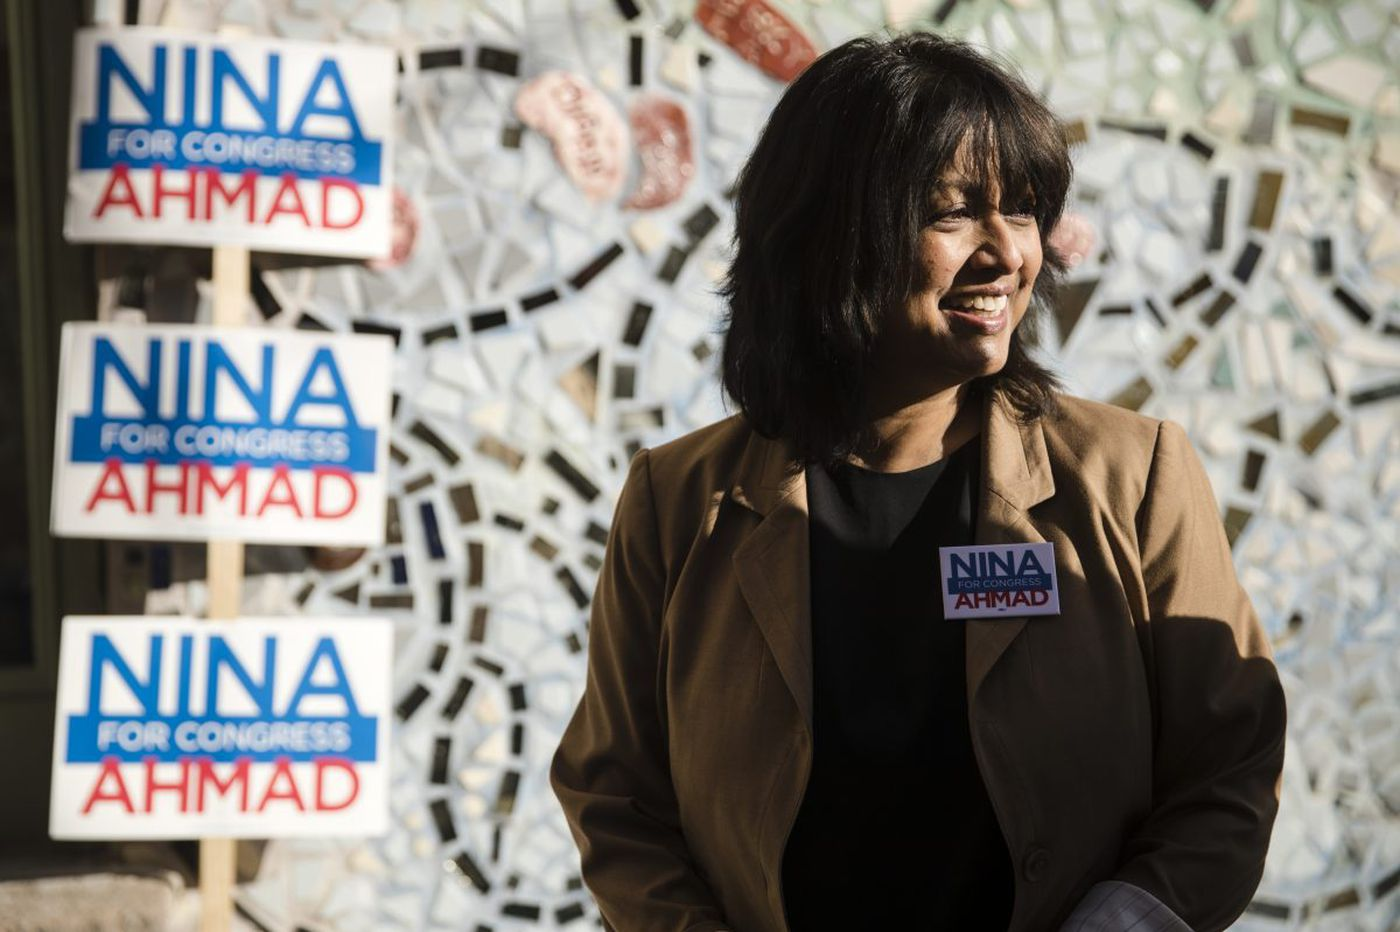 Nina Ahmad is making a million-dollar bet that an obscure state office will open future opportunities